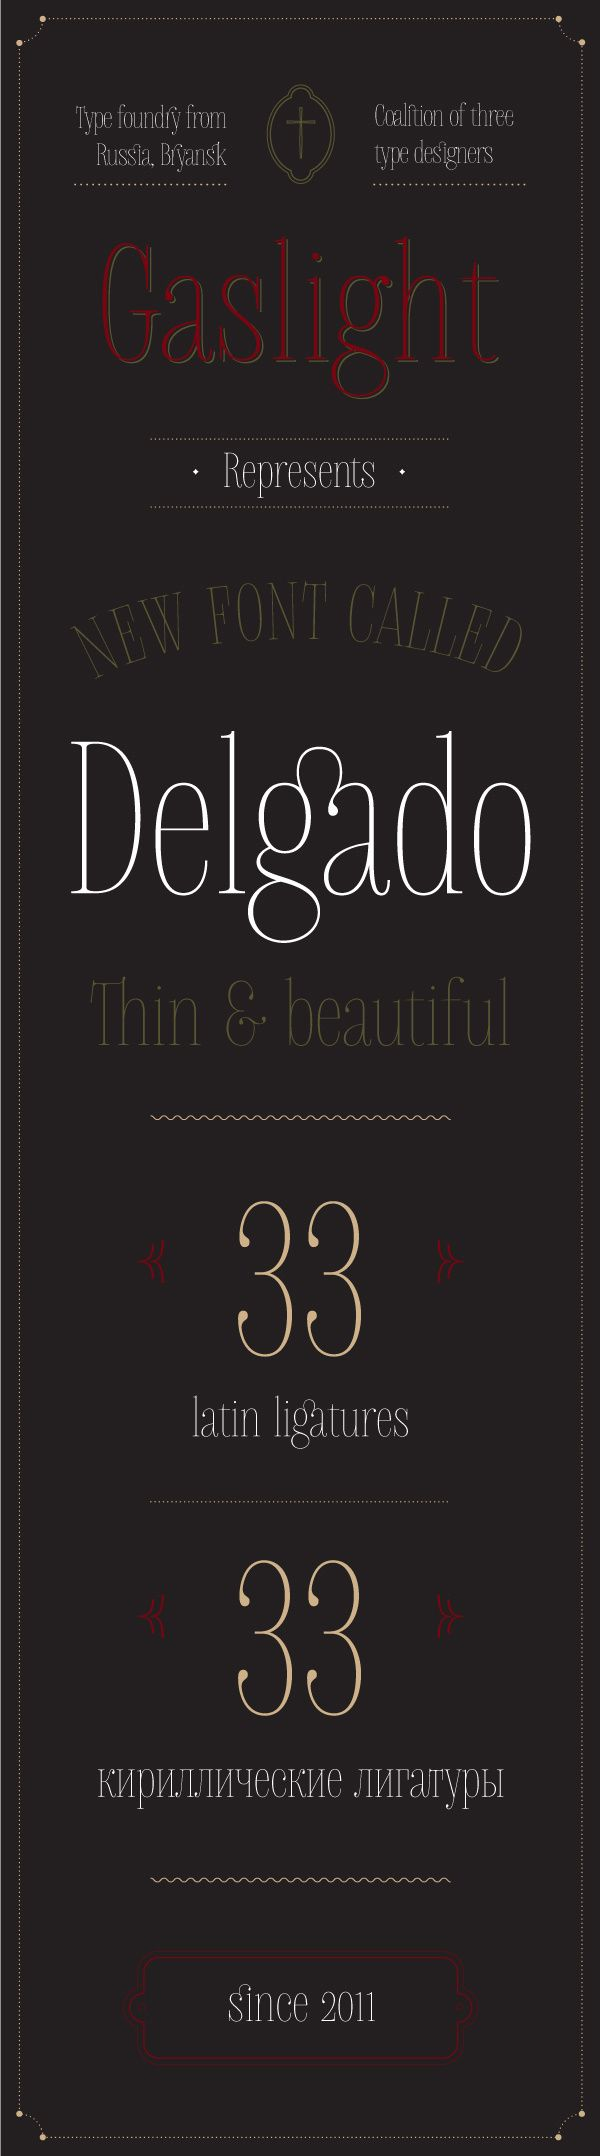 Delgado font on Typography Served #font #serif #design #ligatures #type #beauty